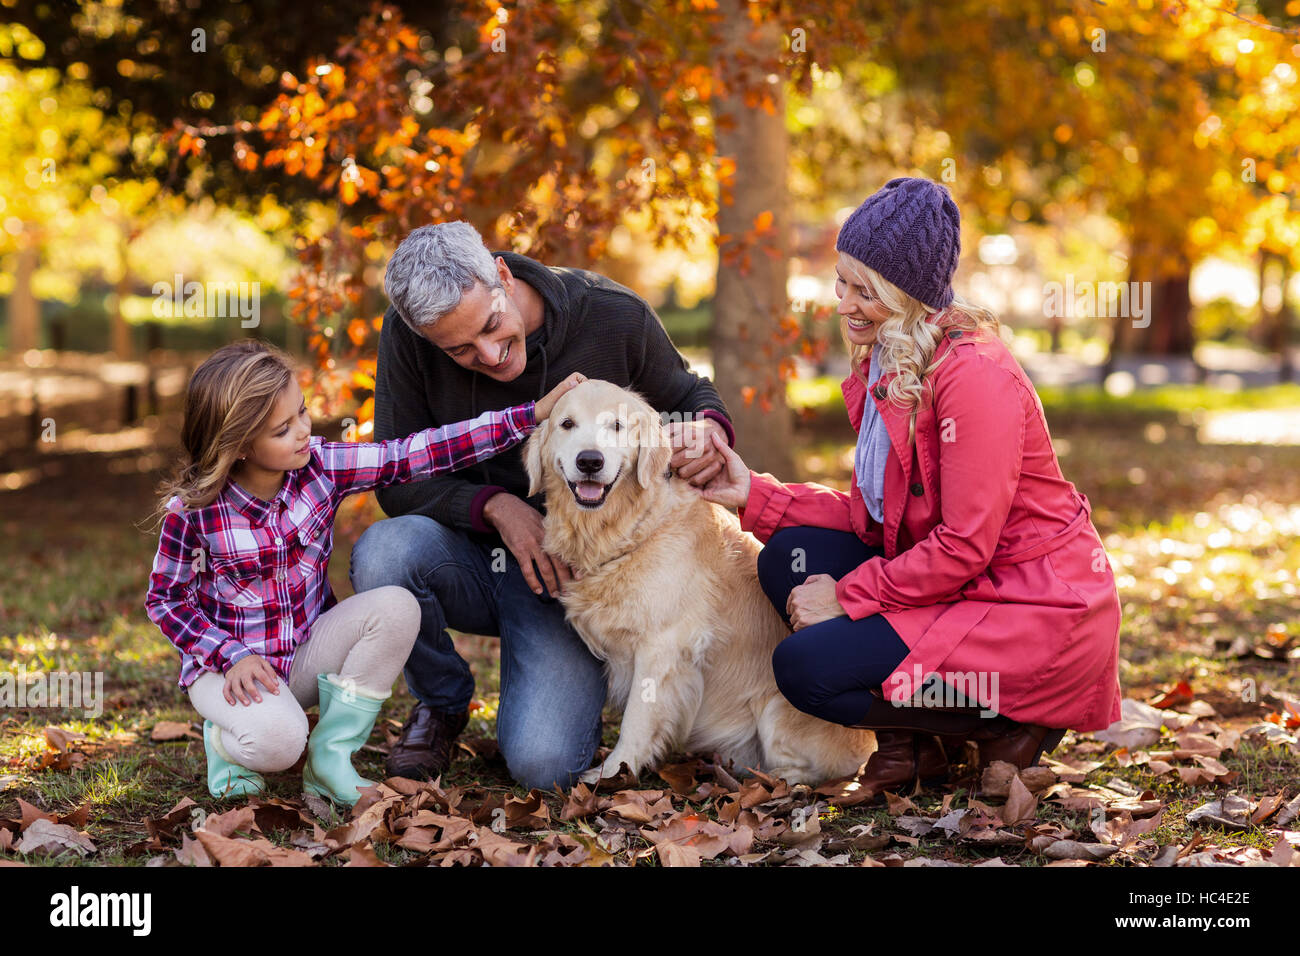 Family stroking dog while crouching at park - Stock Image